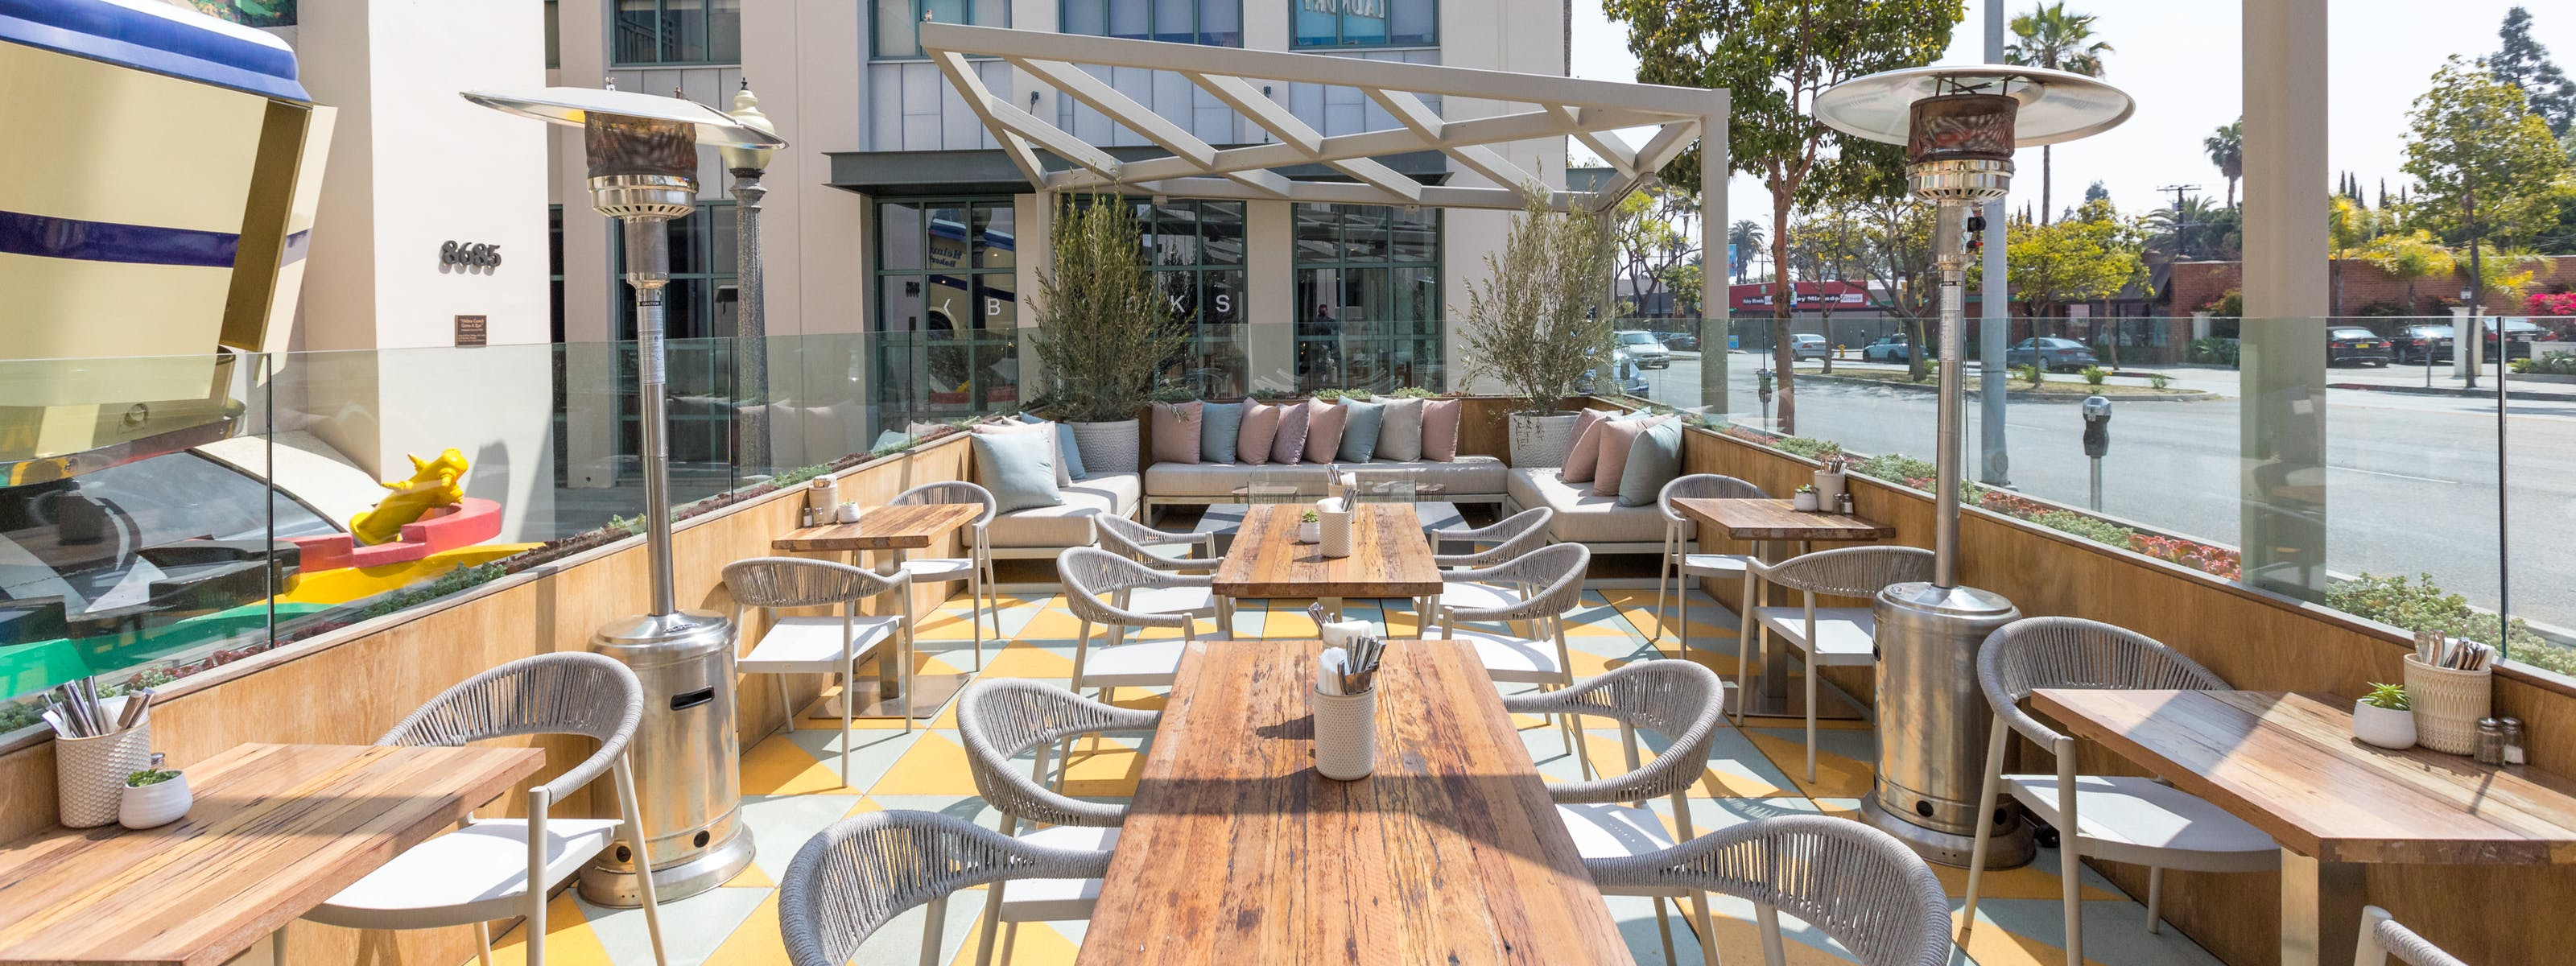 Outdoor Dining In Culver City Palms And Mar Vista Culver City Los Angeles The Infatuation